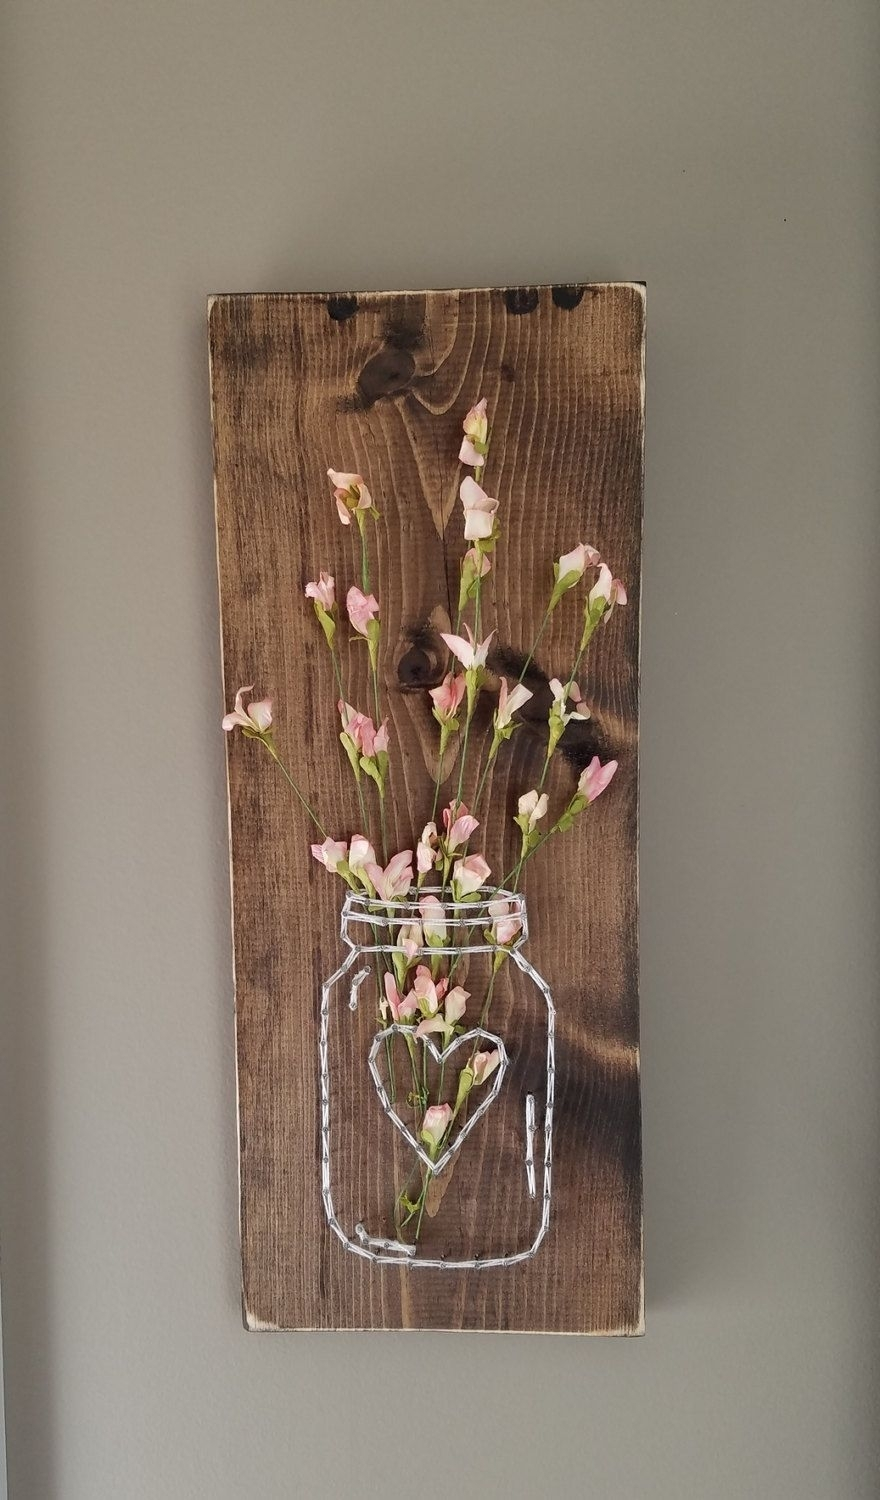 Mason Jar String Art With Artificial Flowers, Wall Art, Wood Wall With Regard To Most Current Mason Jar Wall Art (View 9 of 20)